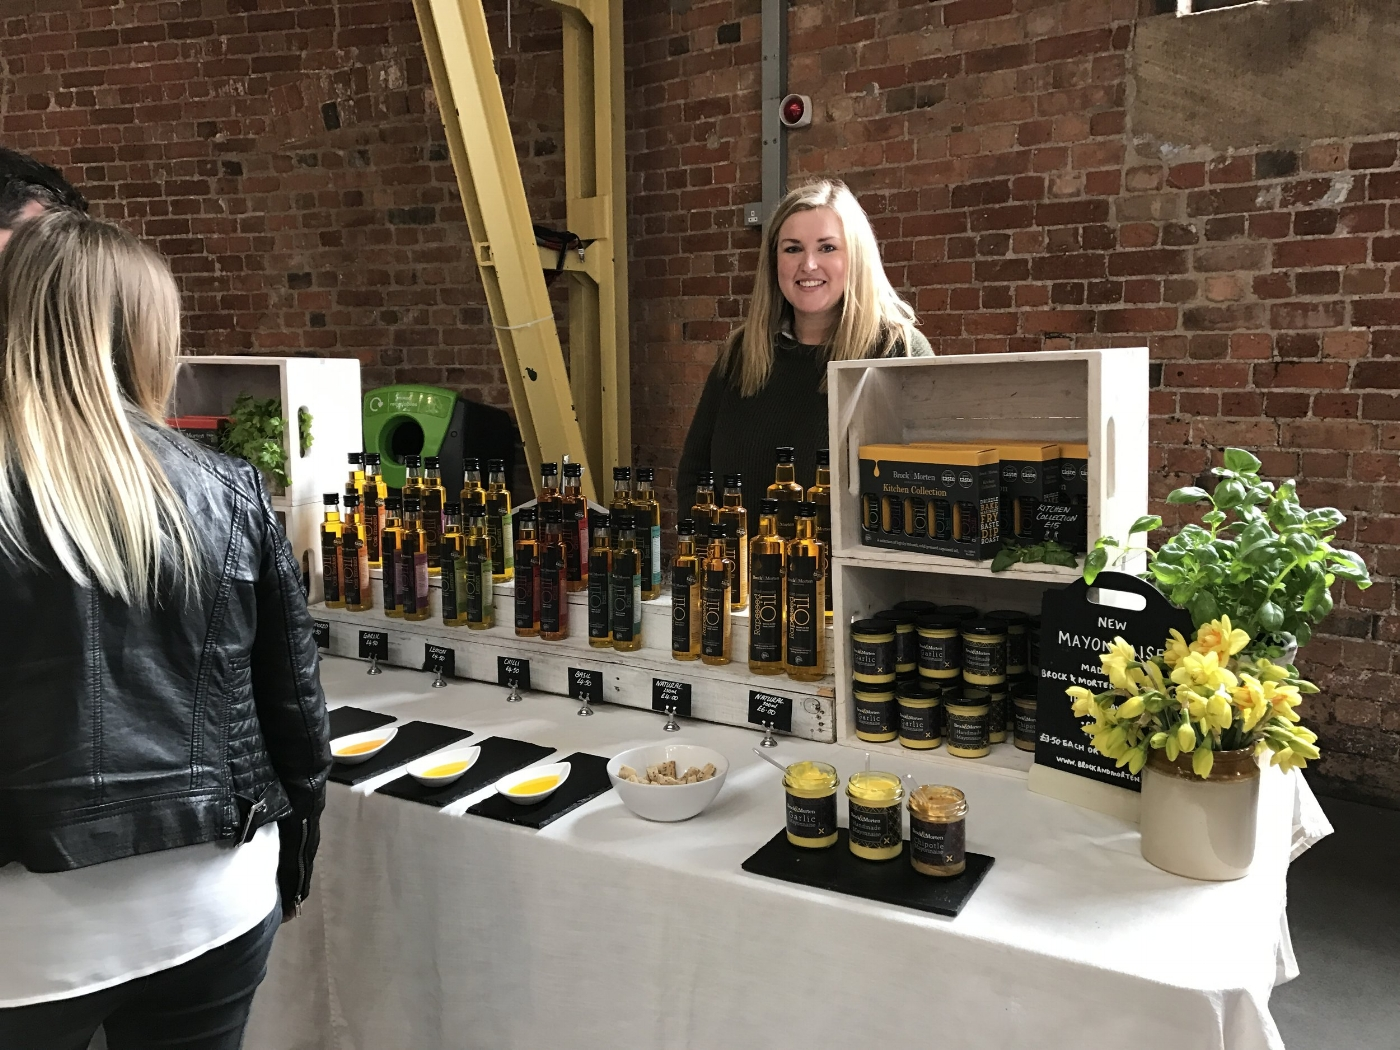 brock and morten rapeseed oil at events